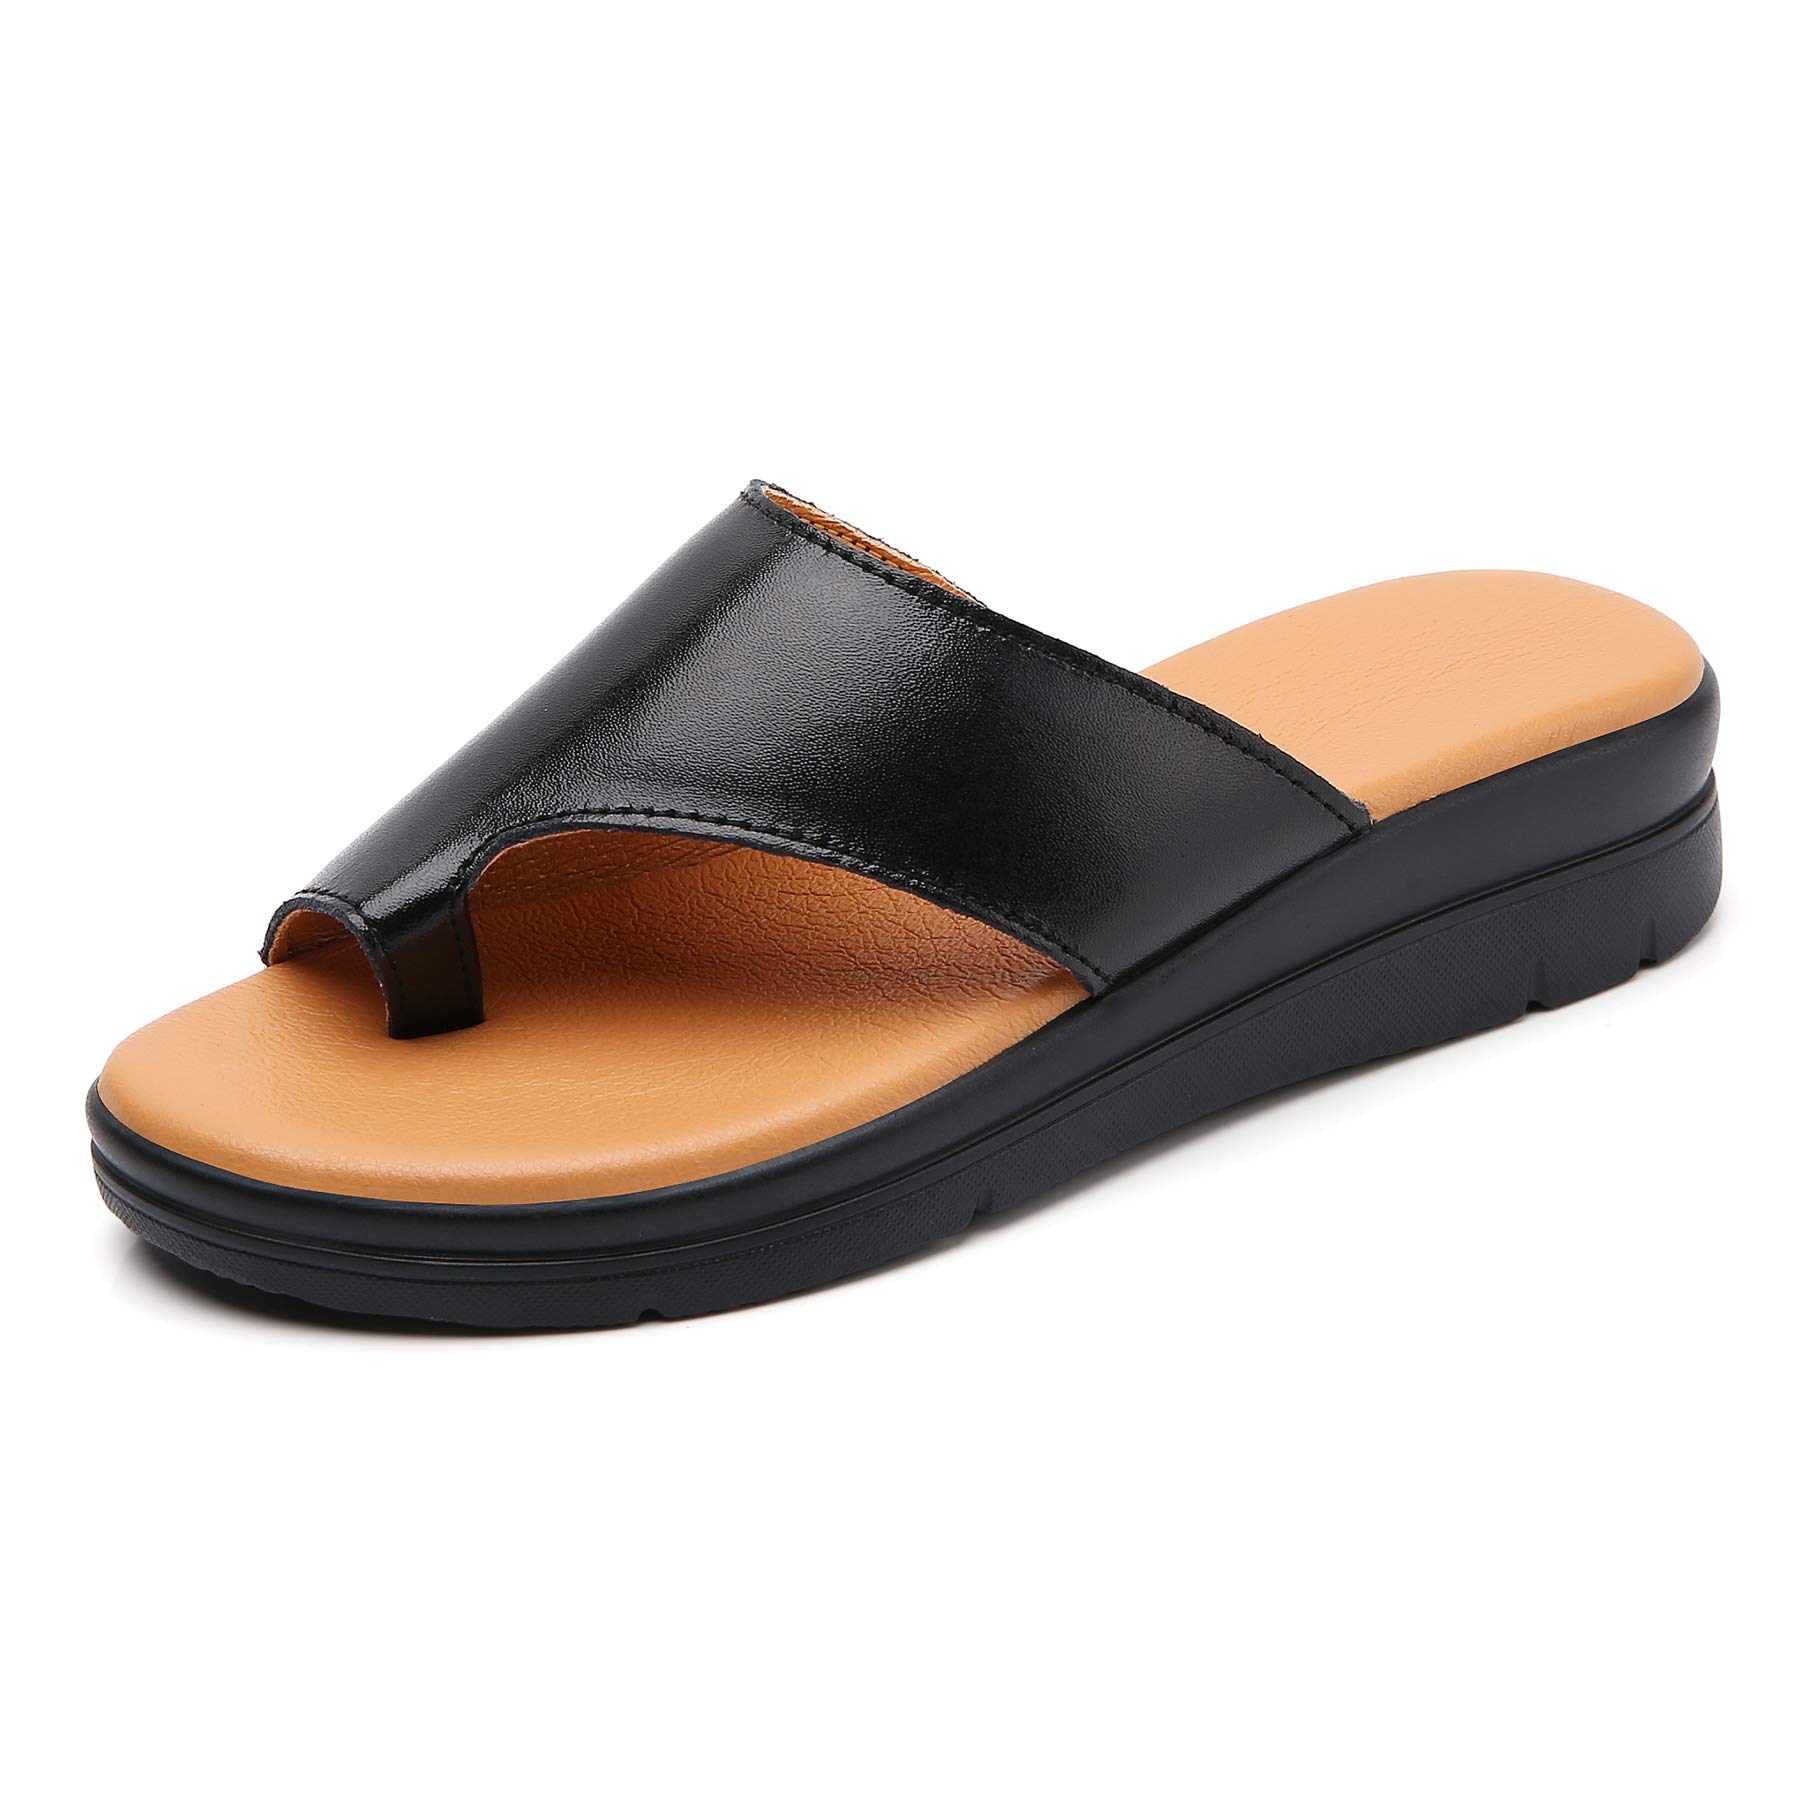 Bunion Sandals for Women Comfy - Bunion Corrector Platform Shoes BSP-2 Genuine Leather Women Flip-Flop Light Weight Ladys Shoes Wedge Sandals Black Gold Brown White